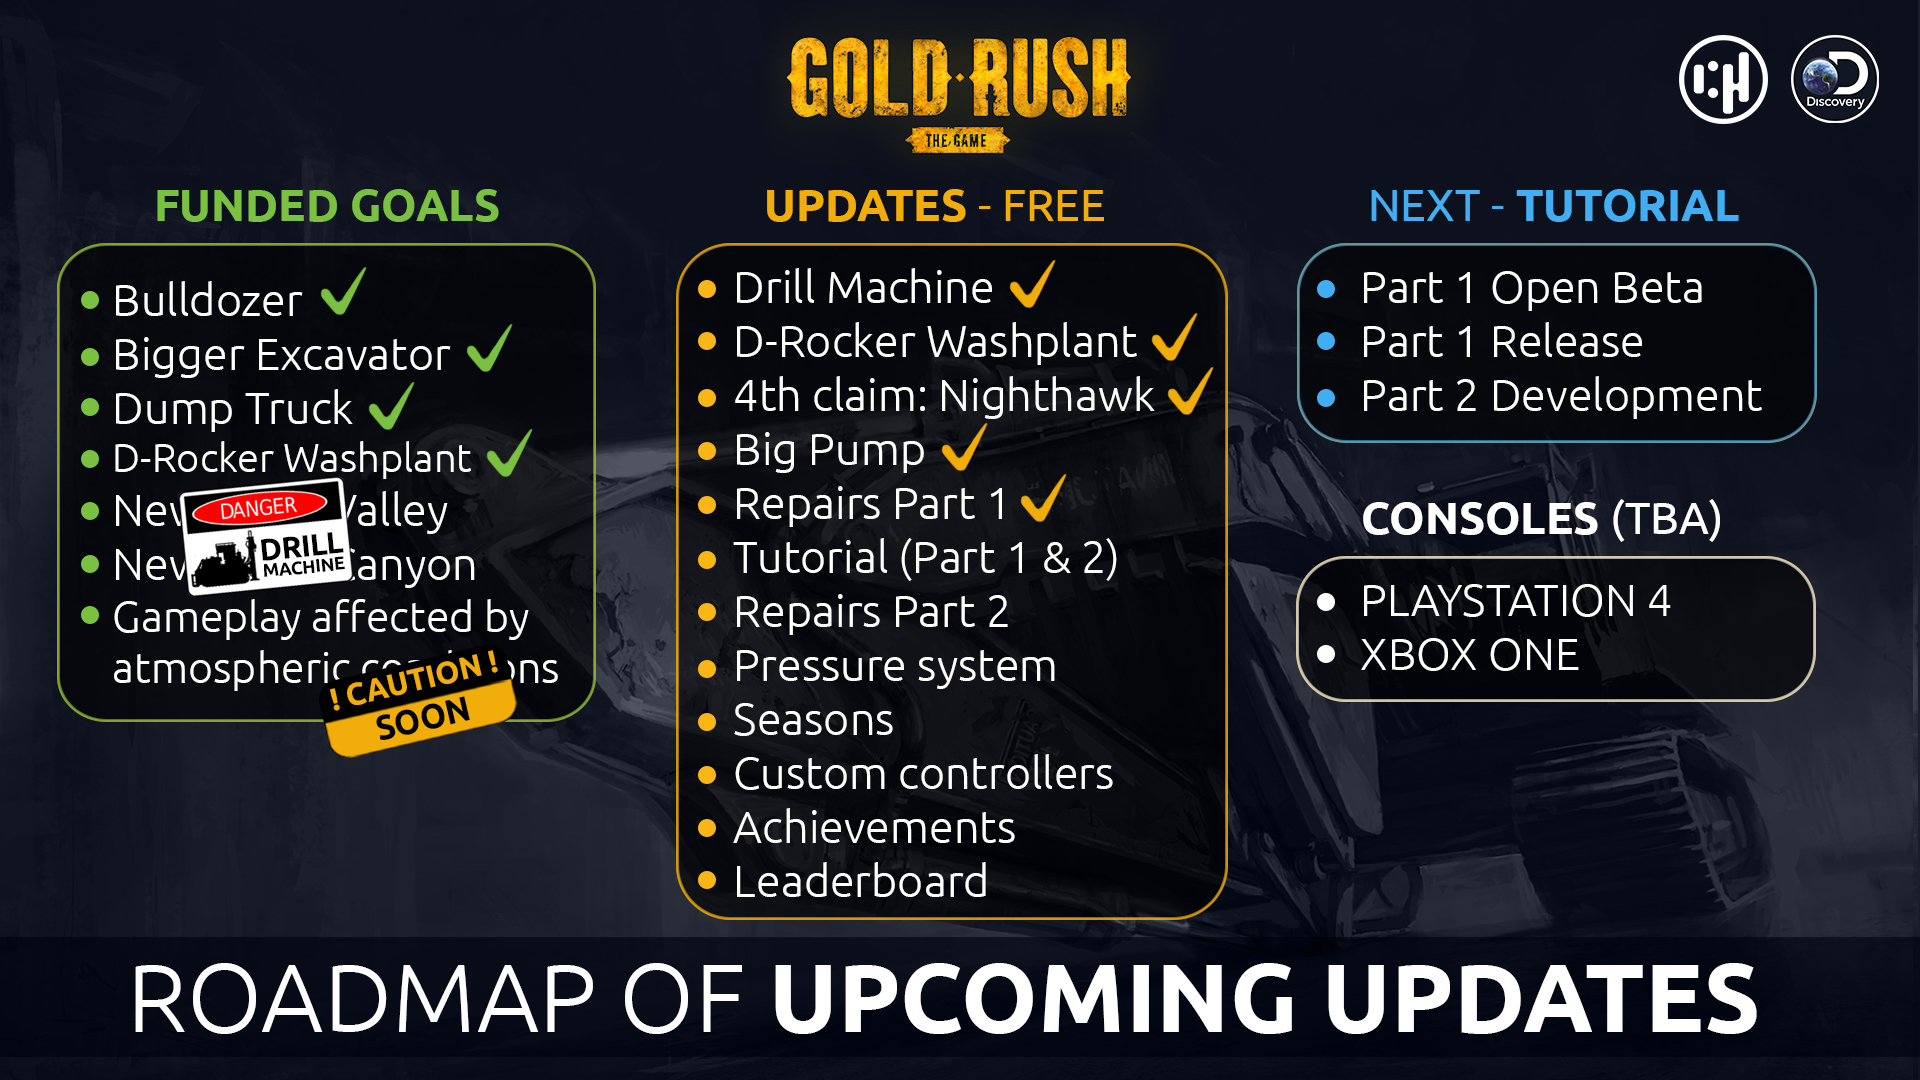 Steam Gold Rush The Game Roadmap Of Upcoming Updates